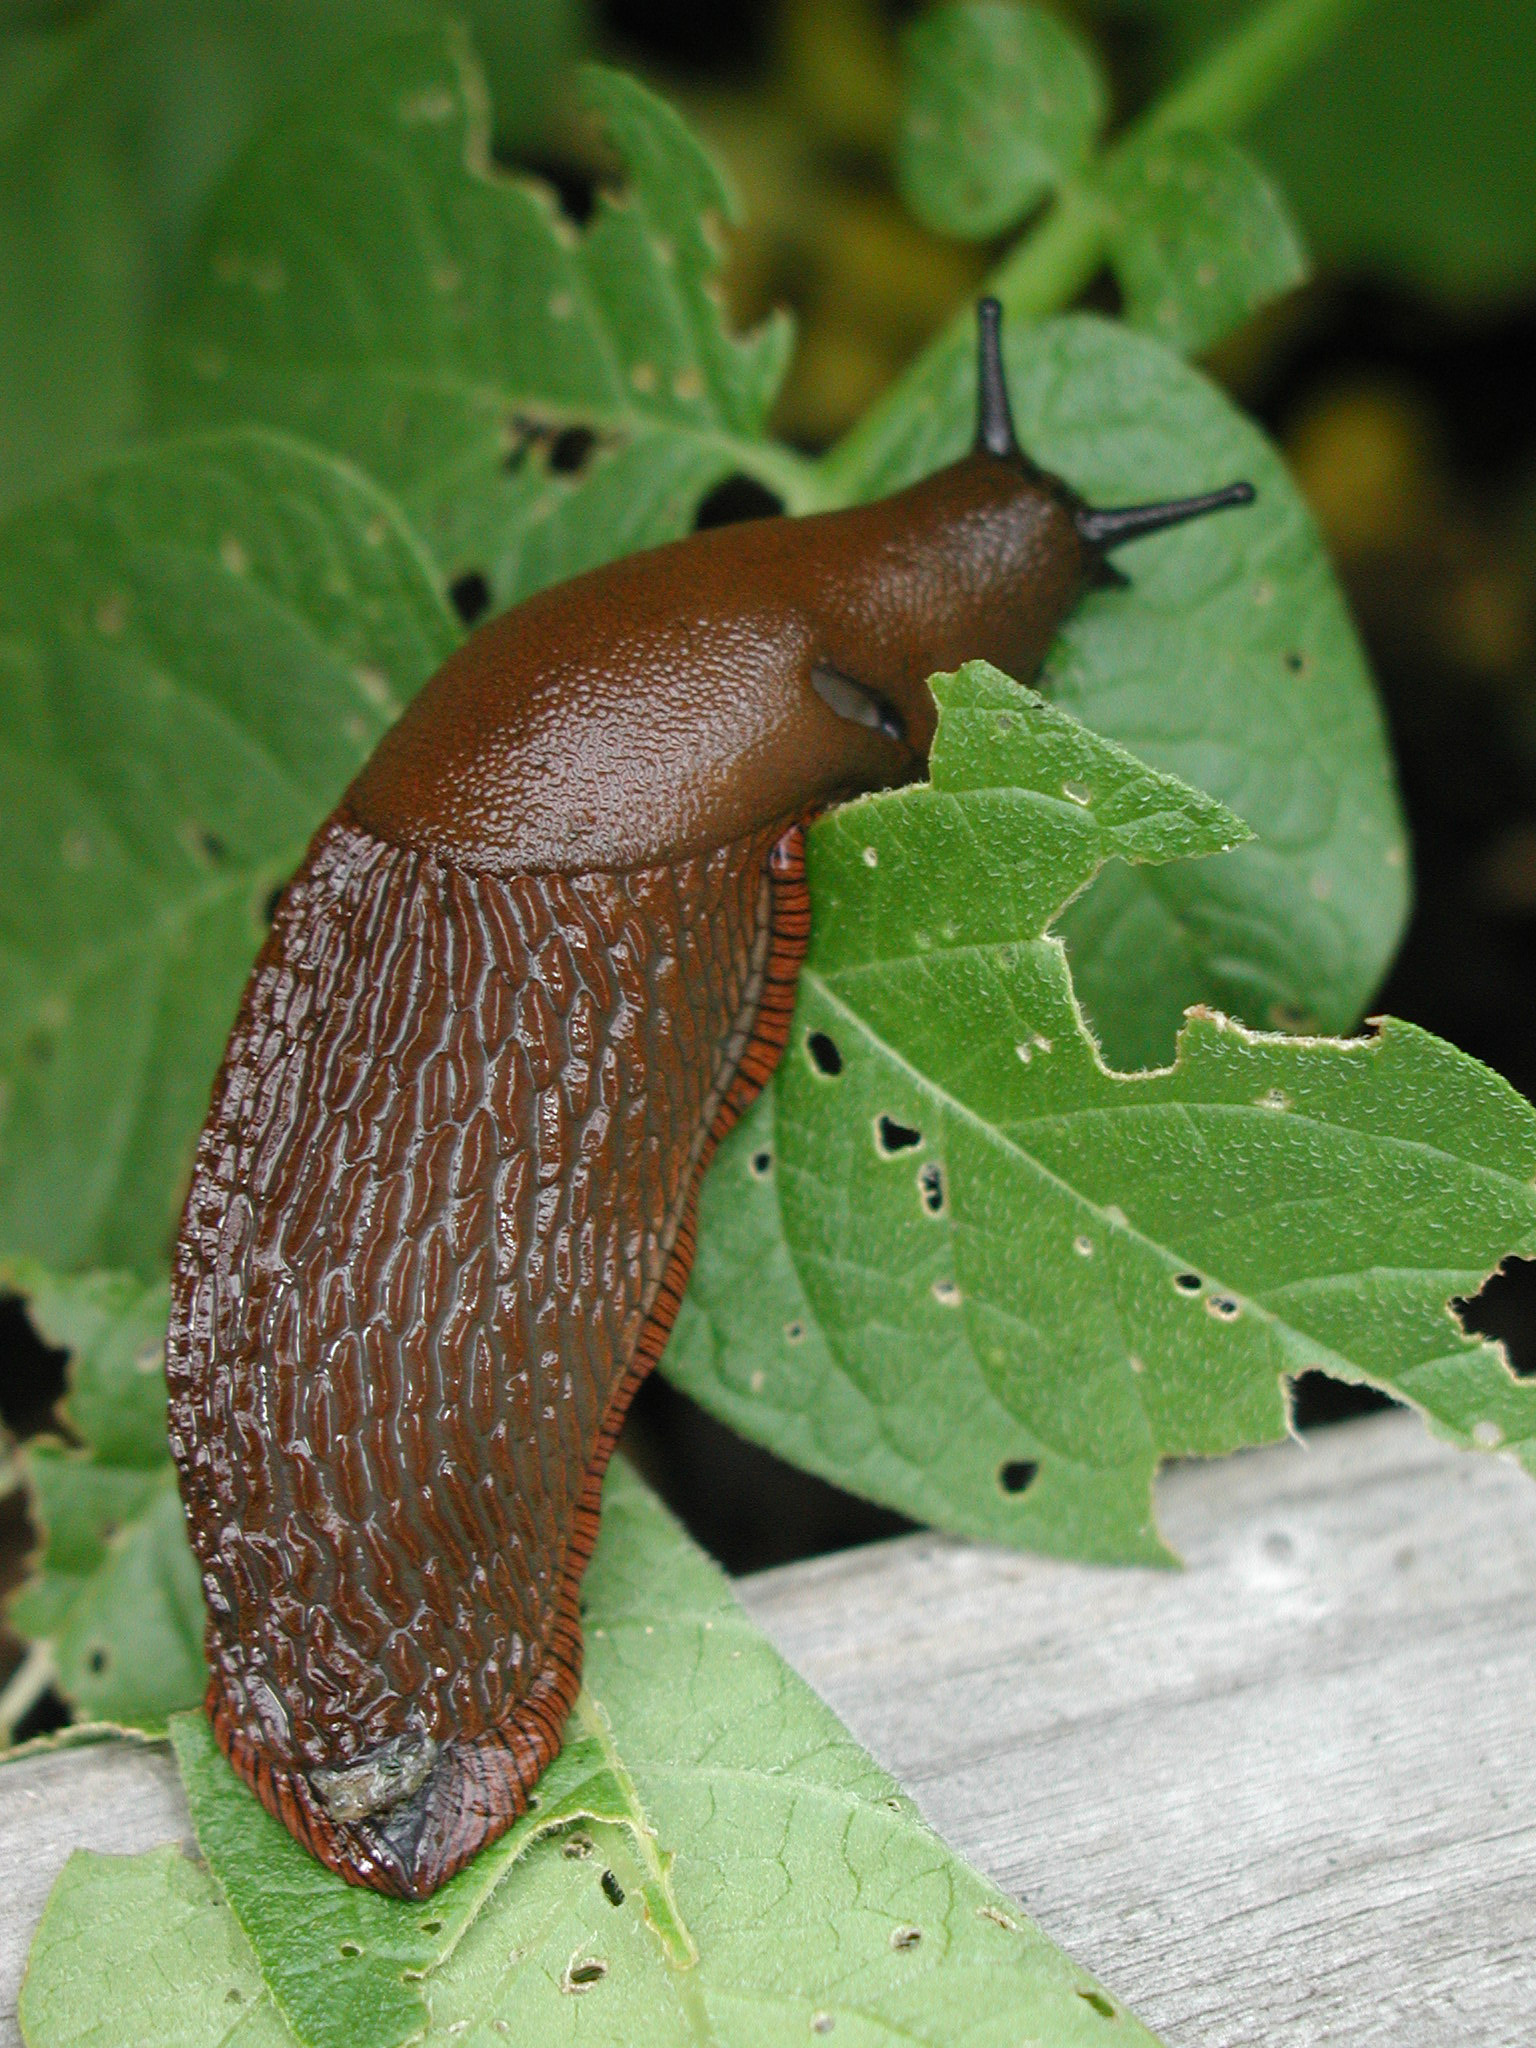 Slinky, slimy slugs on the loose and chomping through gardens